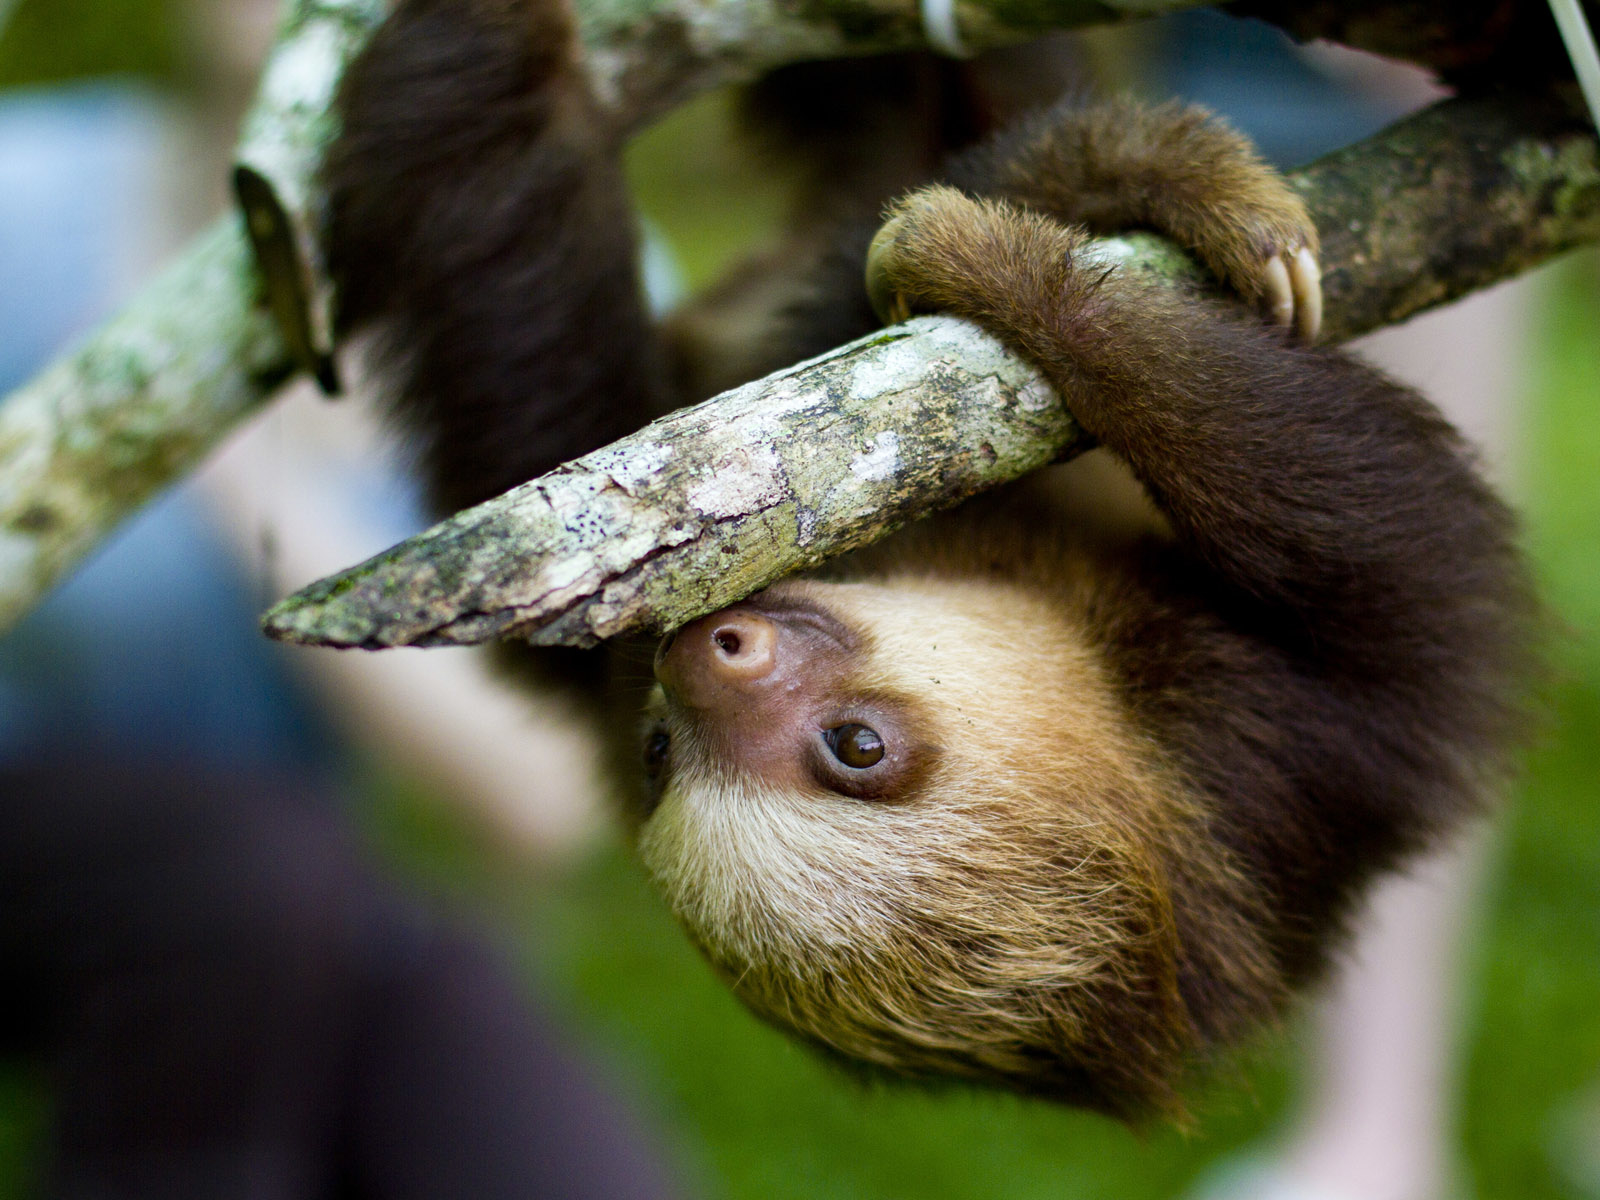 Sloth on tree - surrounding area